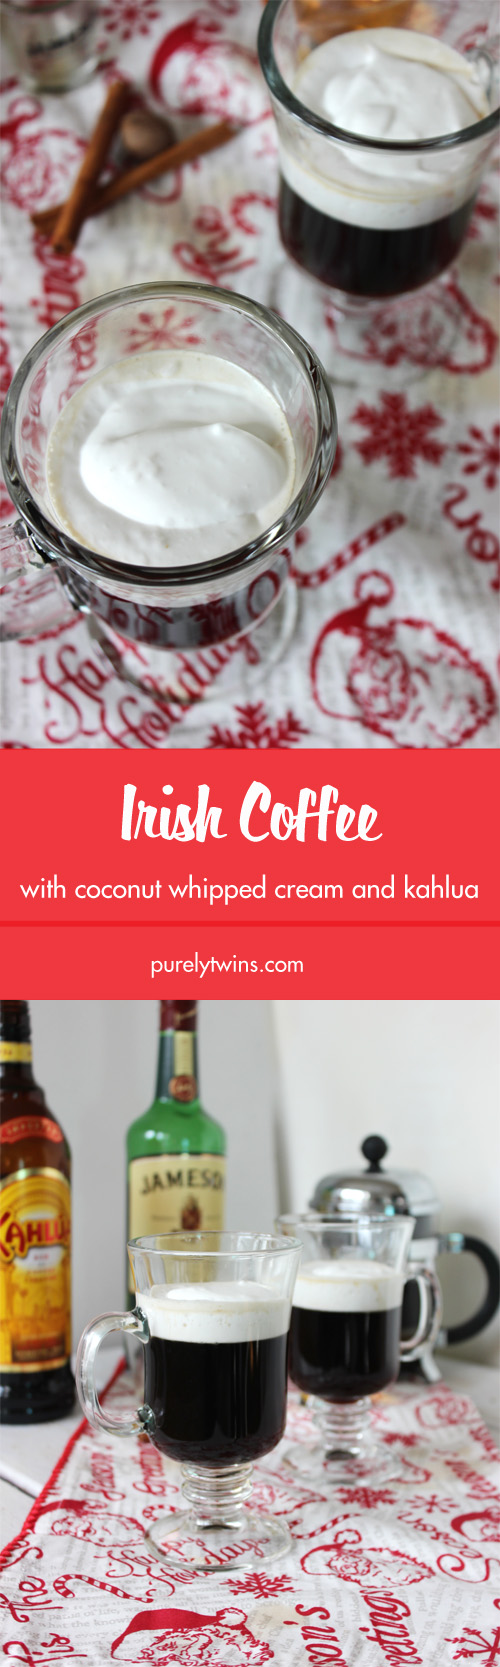 We made this Irish Coffee Creme with kahlua in just 10 minutes! The addition of kahlua instead of brown sugar was the bomb!  This drink recipe will warm your soul.